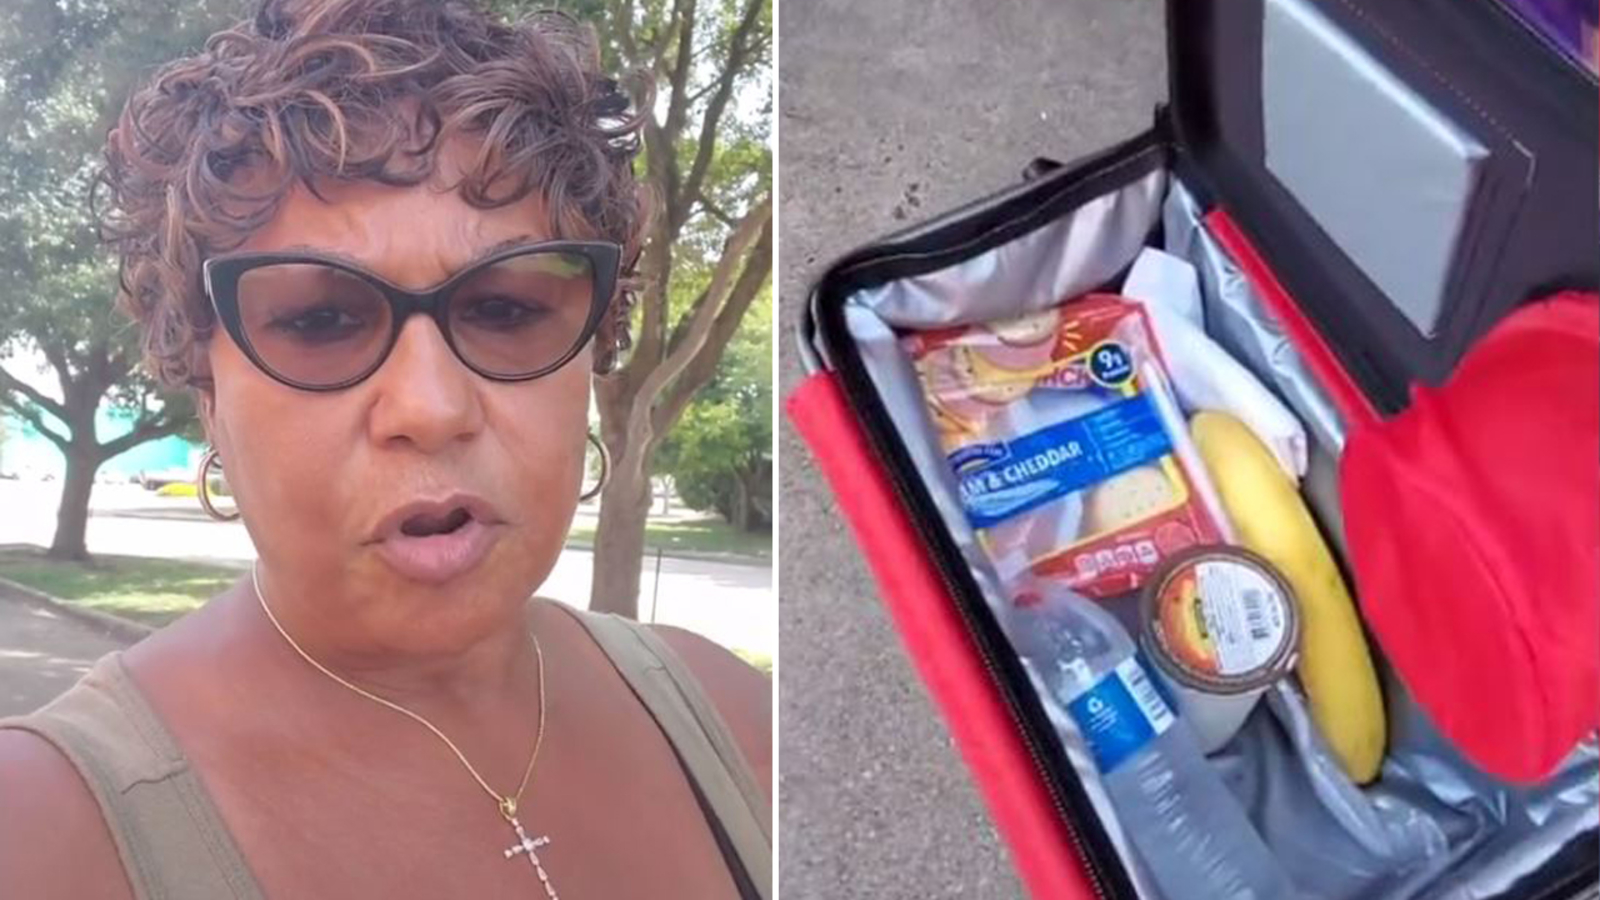 Houston woman has hilarious tips on waiting in line to vote in viral TikTok video